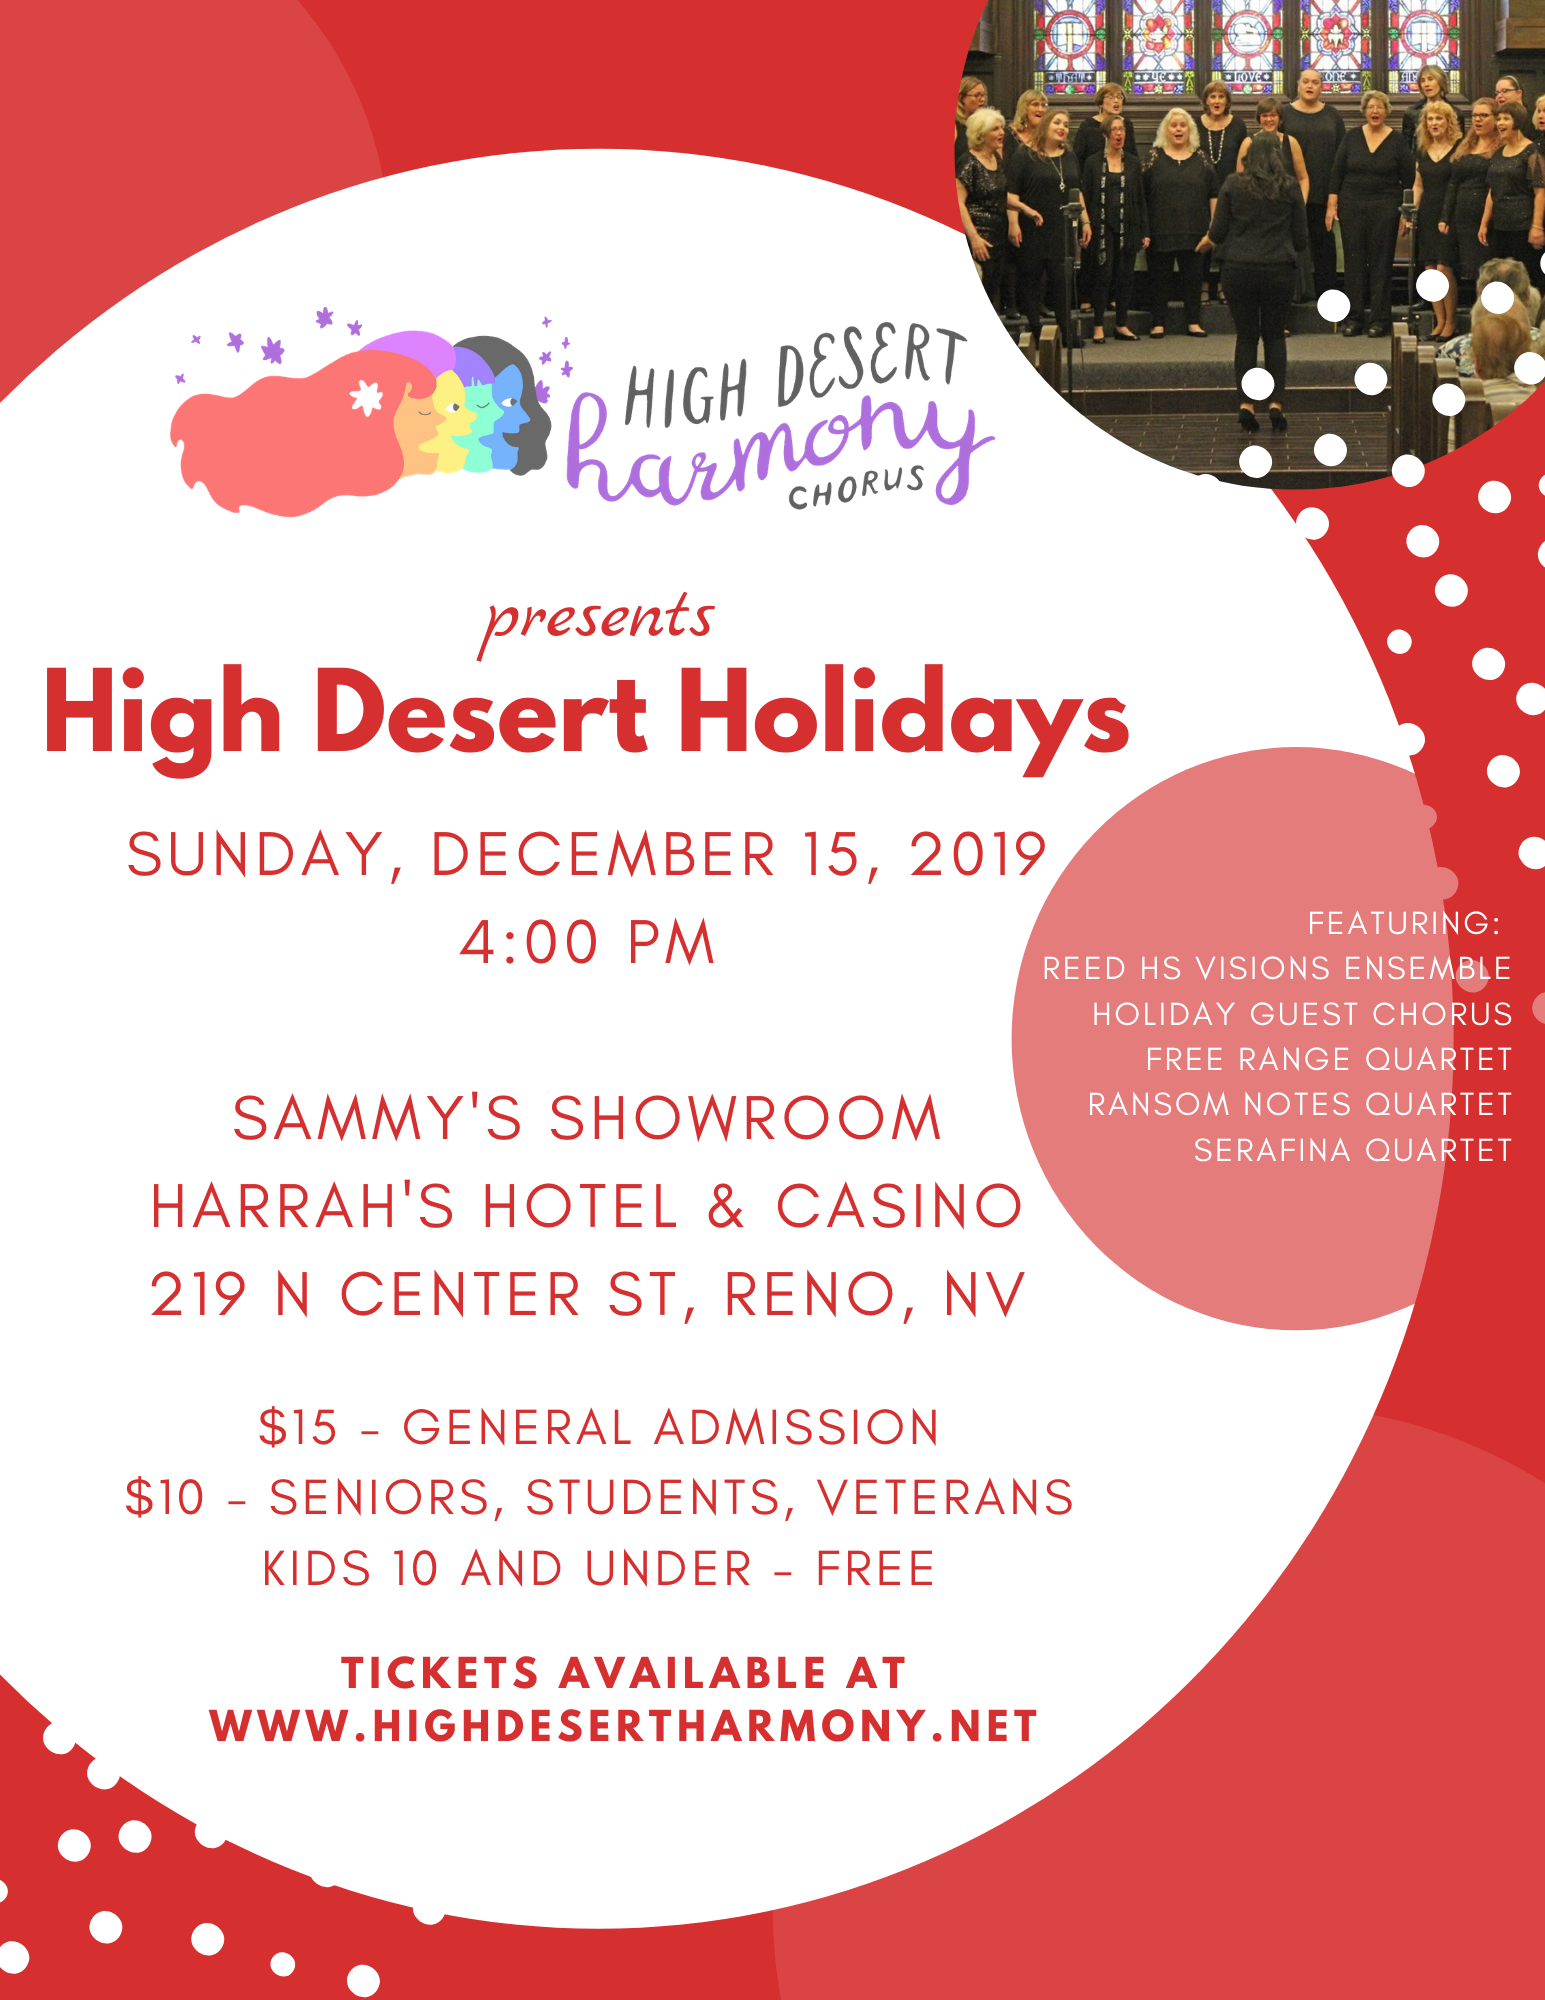 High Desert Holidays